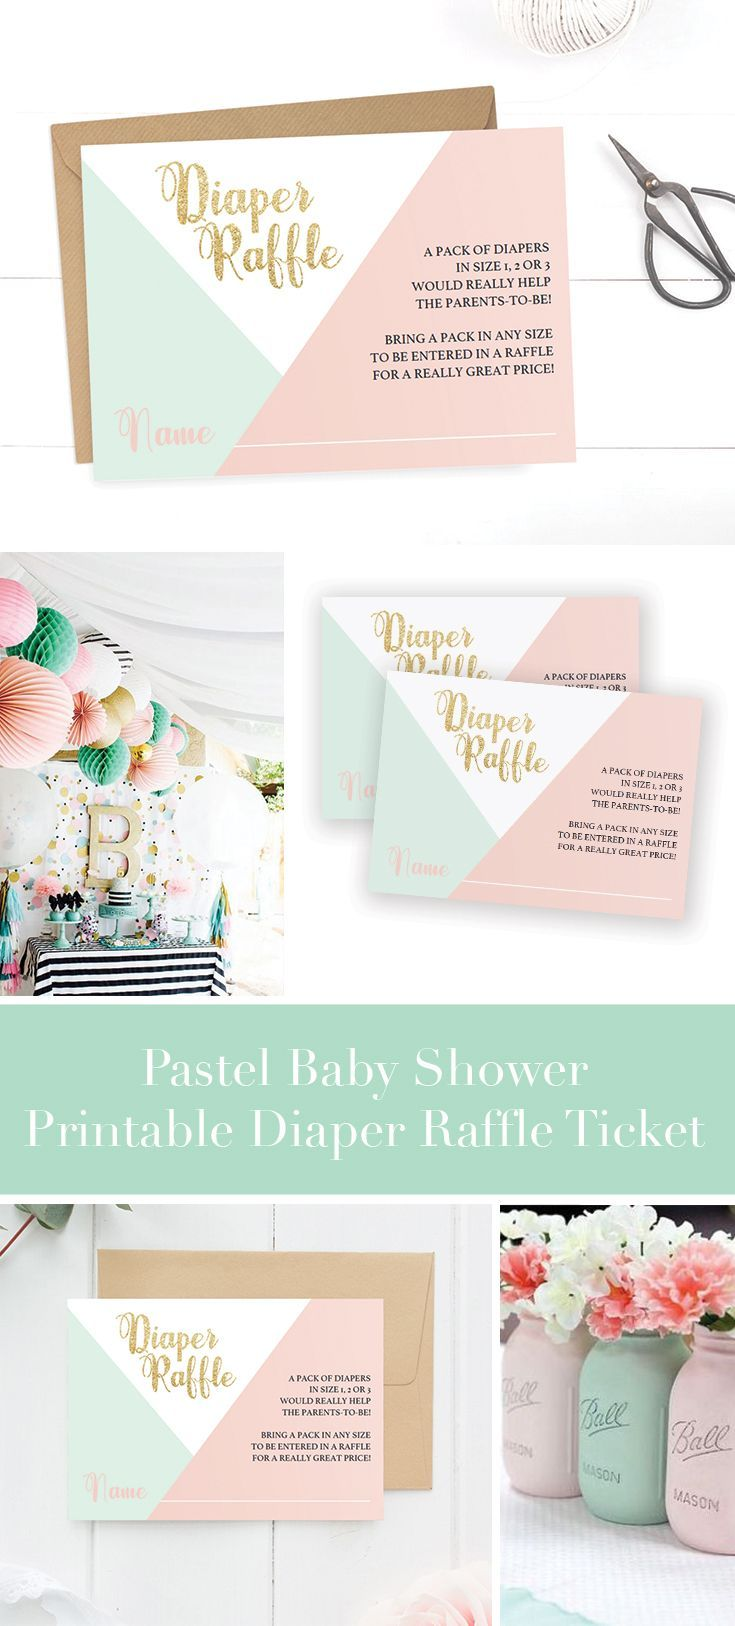 Baby Shower Diaper Raffle Ticket Printable by LittleSizzle. Pastel and Gold themed Baby Shower ideas. The charming poem on these pastel Diaper Raffle tickets lets your guests know they can win a great price by bringing a pack of diapers. Include them in your invitations for any baby shower. You can personalize the tickets with your own words. Simply download, edit and print!